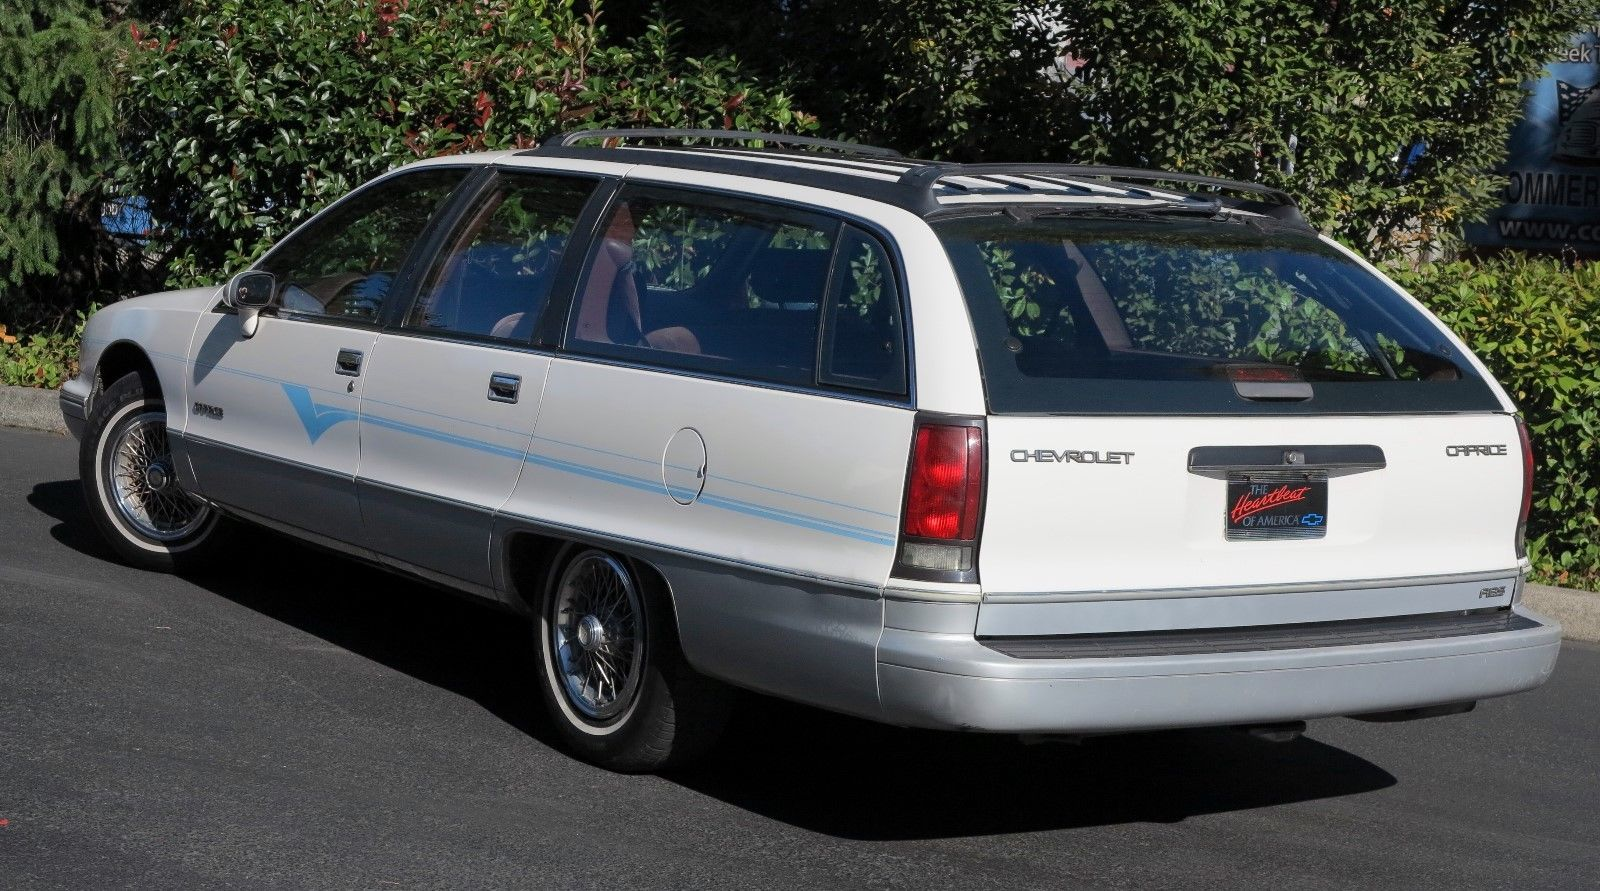 1991 Chevrolet Caprice Classic Wagon low 3/4 rear